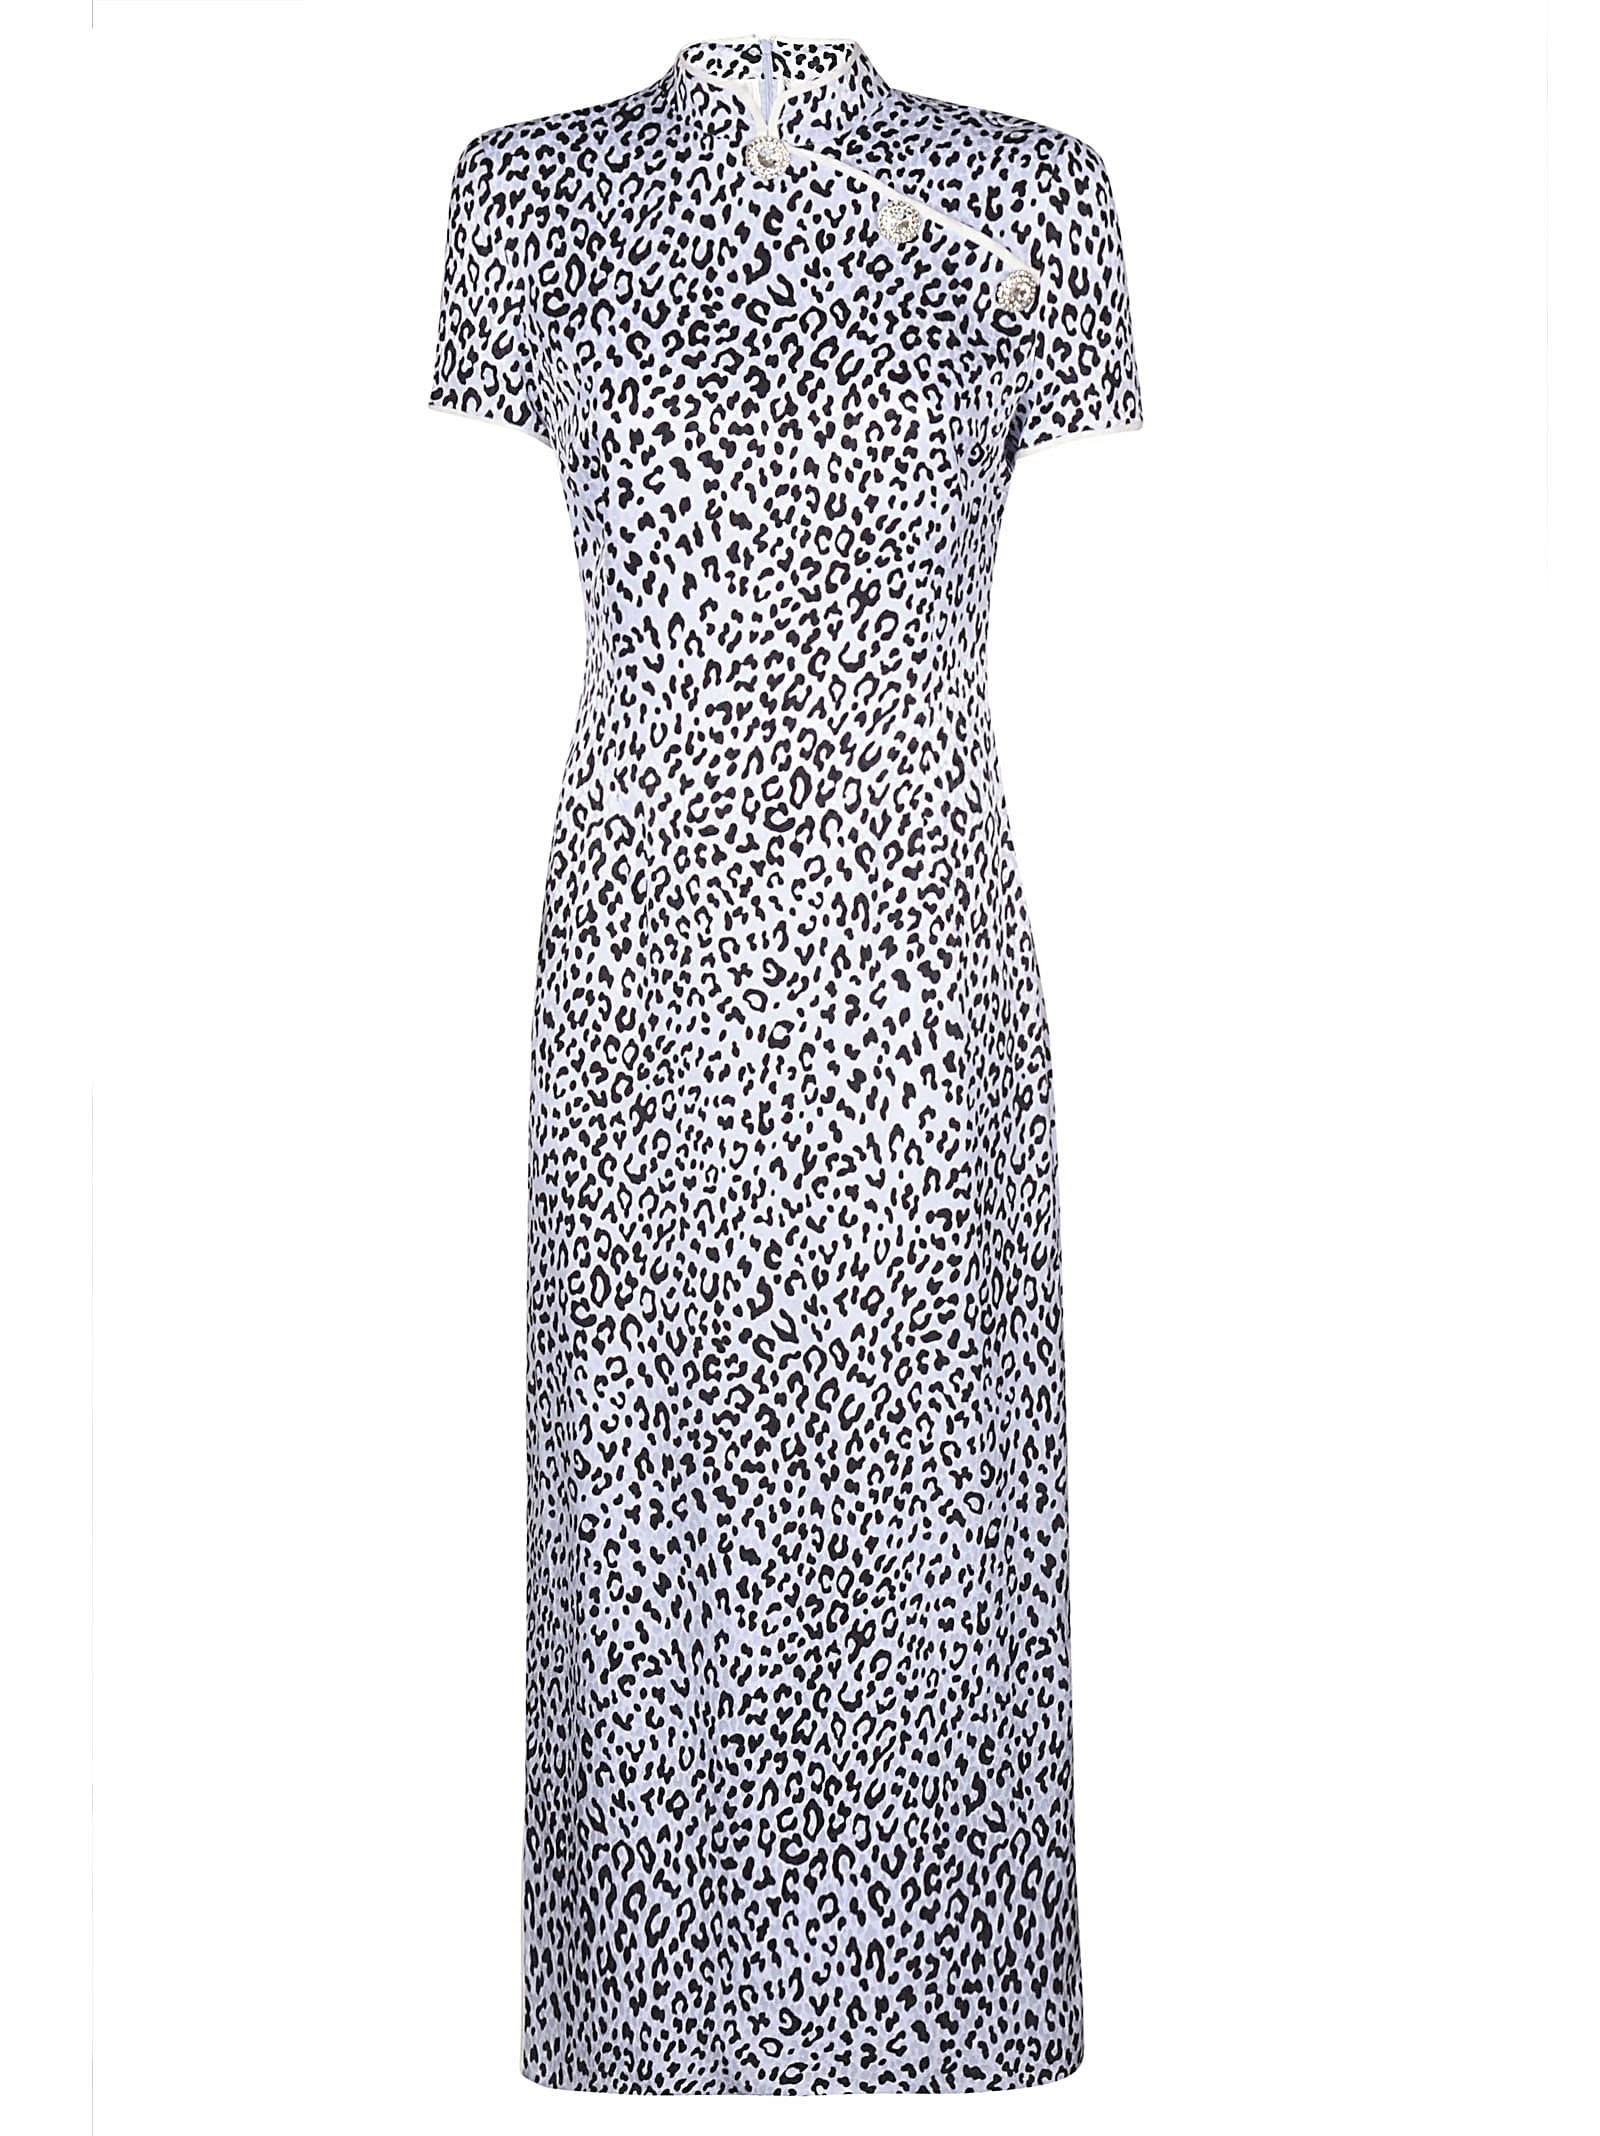 Alessandra Rich Silk Jacquard Dress